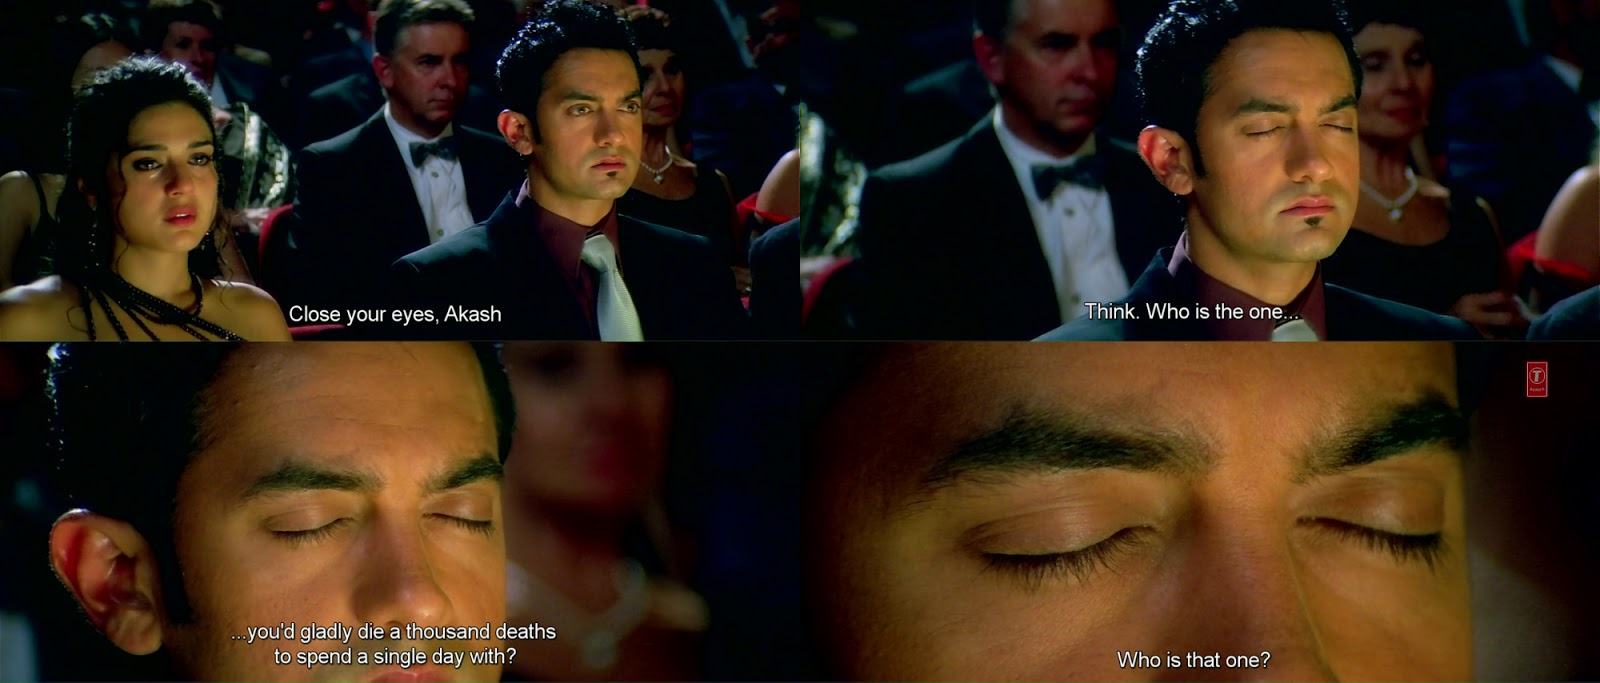 Image result for Dil Chahta Hai:When Akaash closes his eyes and sees Shalini, who was sitting next to her during the opera